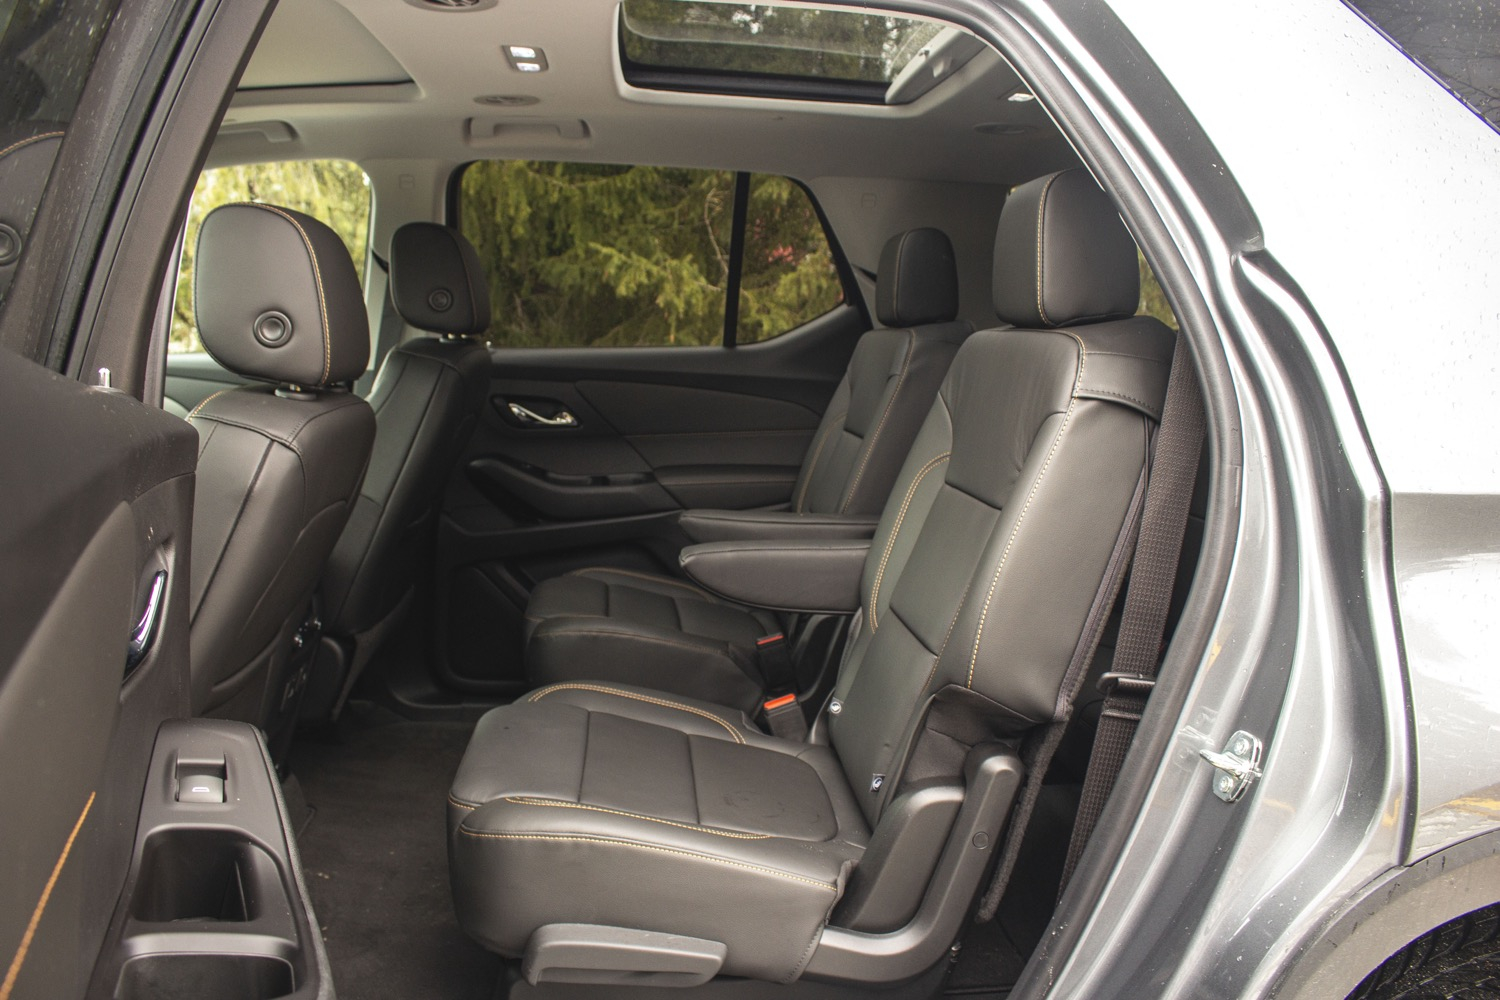 2022 buick encore seat covers safety features towing